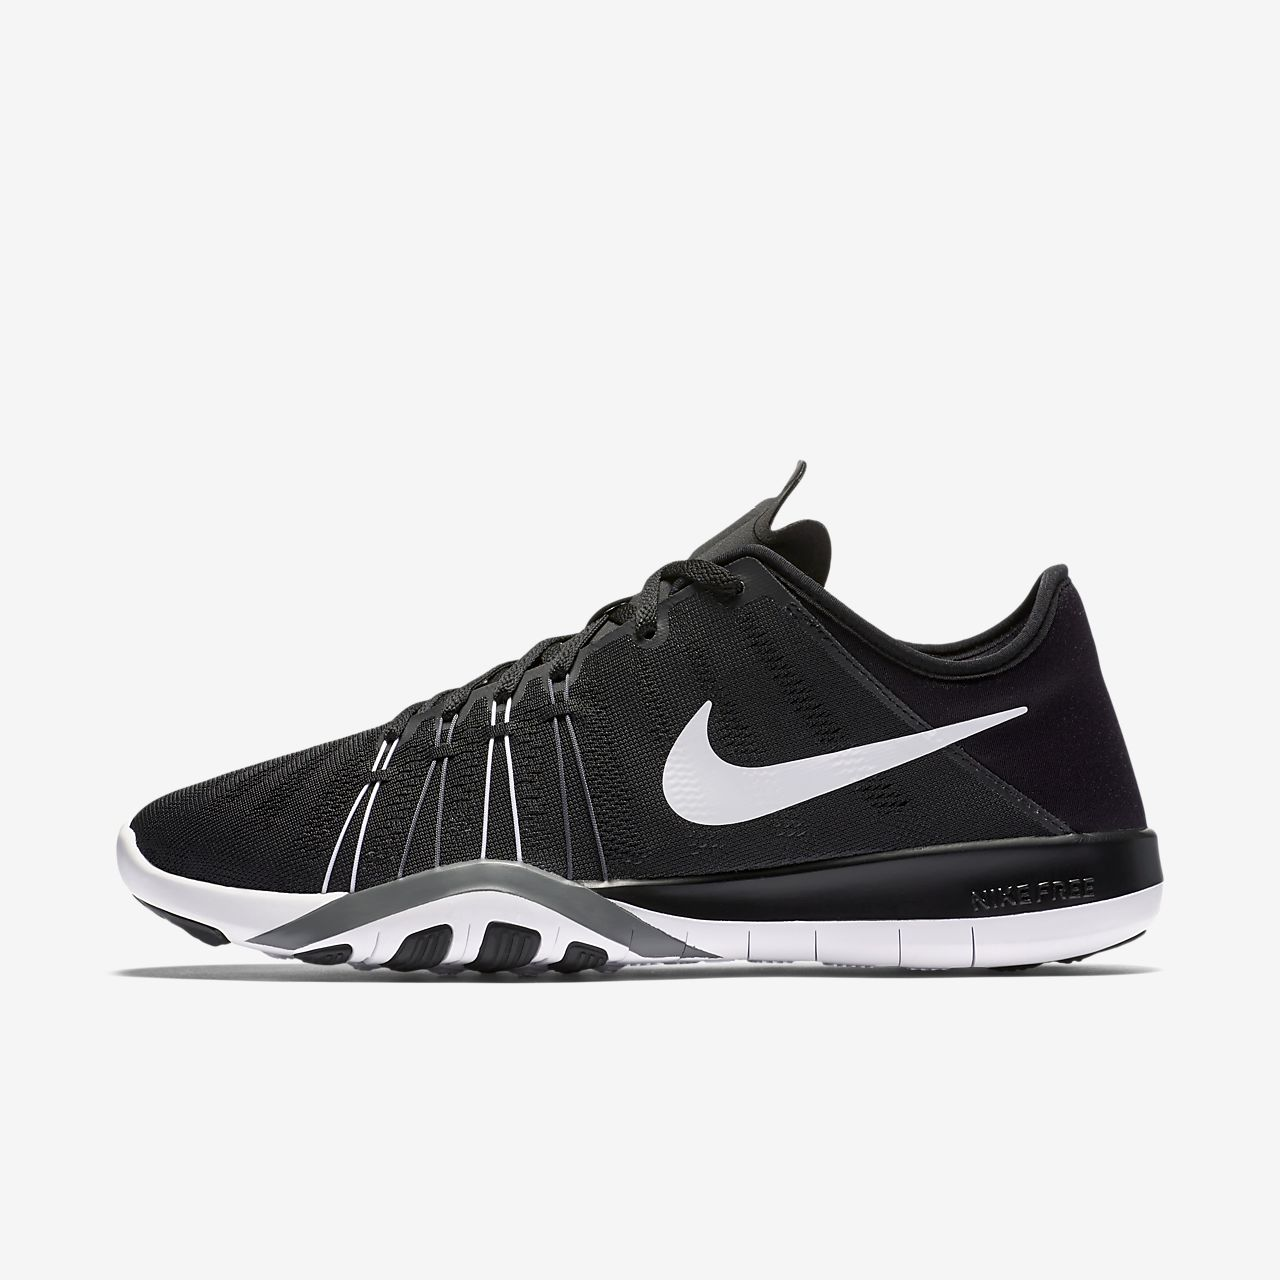 low priced 24071 66abc NIKE Free Trainer 6 tg. 38 39 Scarpe Corsa Donna Fitness Gym Trainer 833413  010 - mainstreetblytheville.org